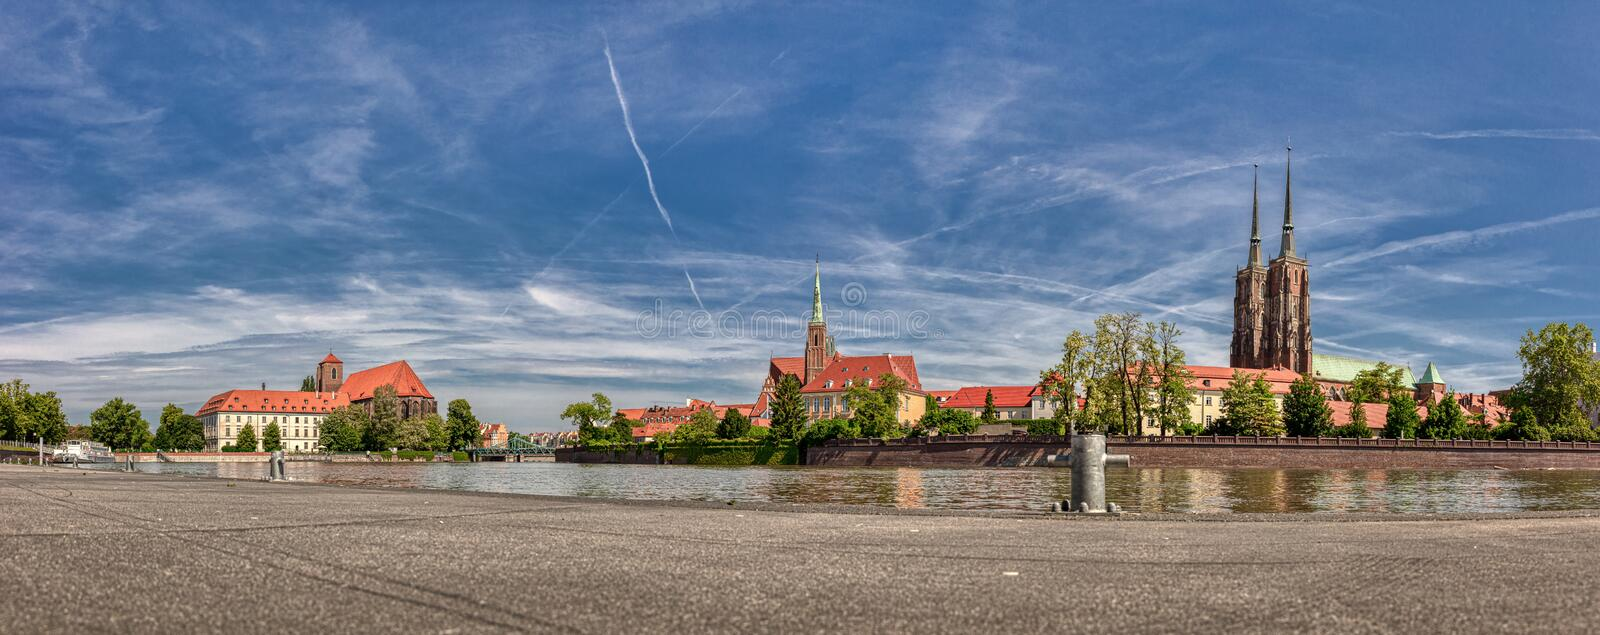 Island Tumski and Odra River in Wroclaw. Wroclaw Old Town. Cathedral Island Ostrow Tumski is the oldest part of the city. Cathedral of St. John and Blessed royalty free stock photo